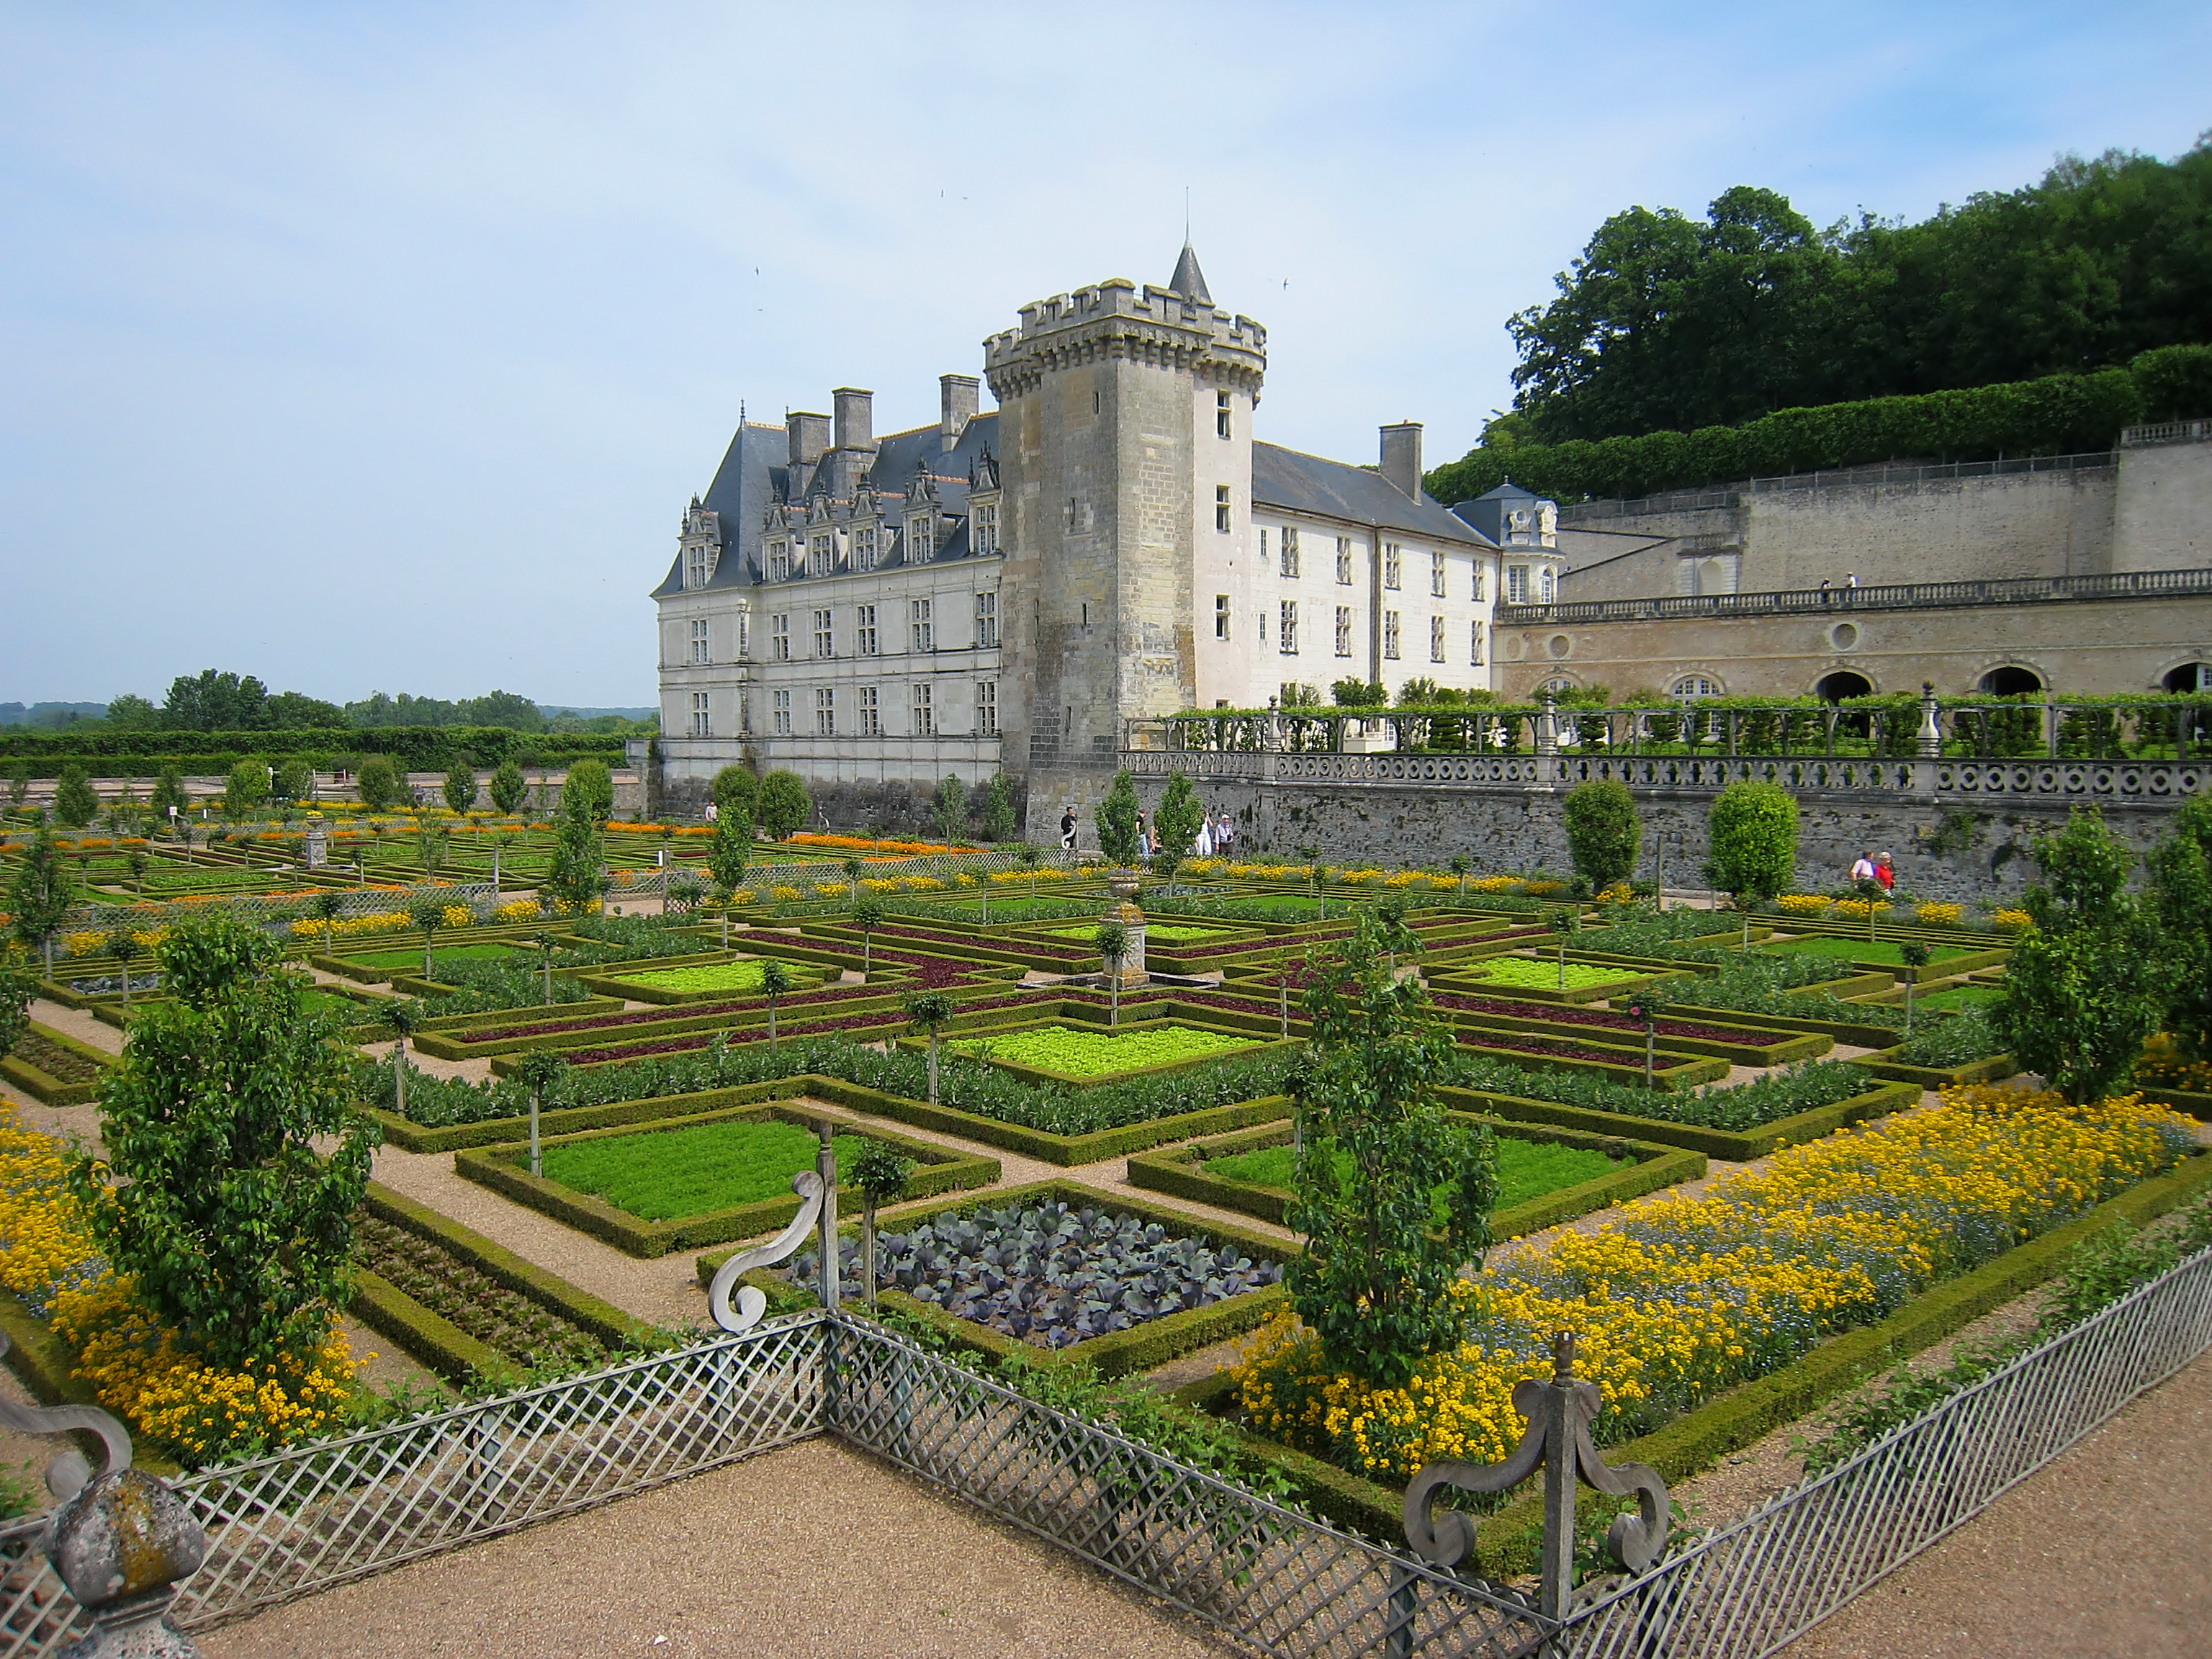 Ornamental Kitchen Garden Garden Of Love At Chacteau De Villandry Most Romantic Gardens In